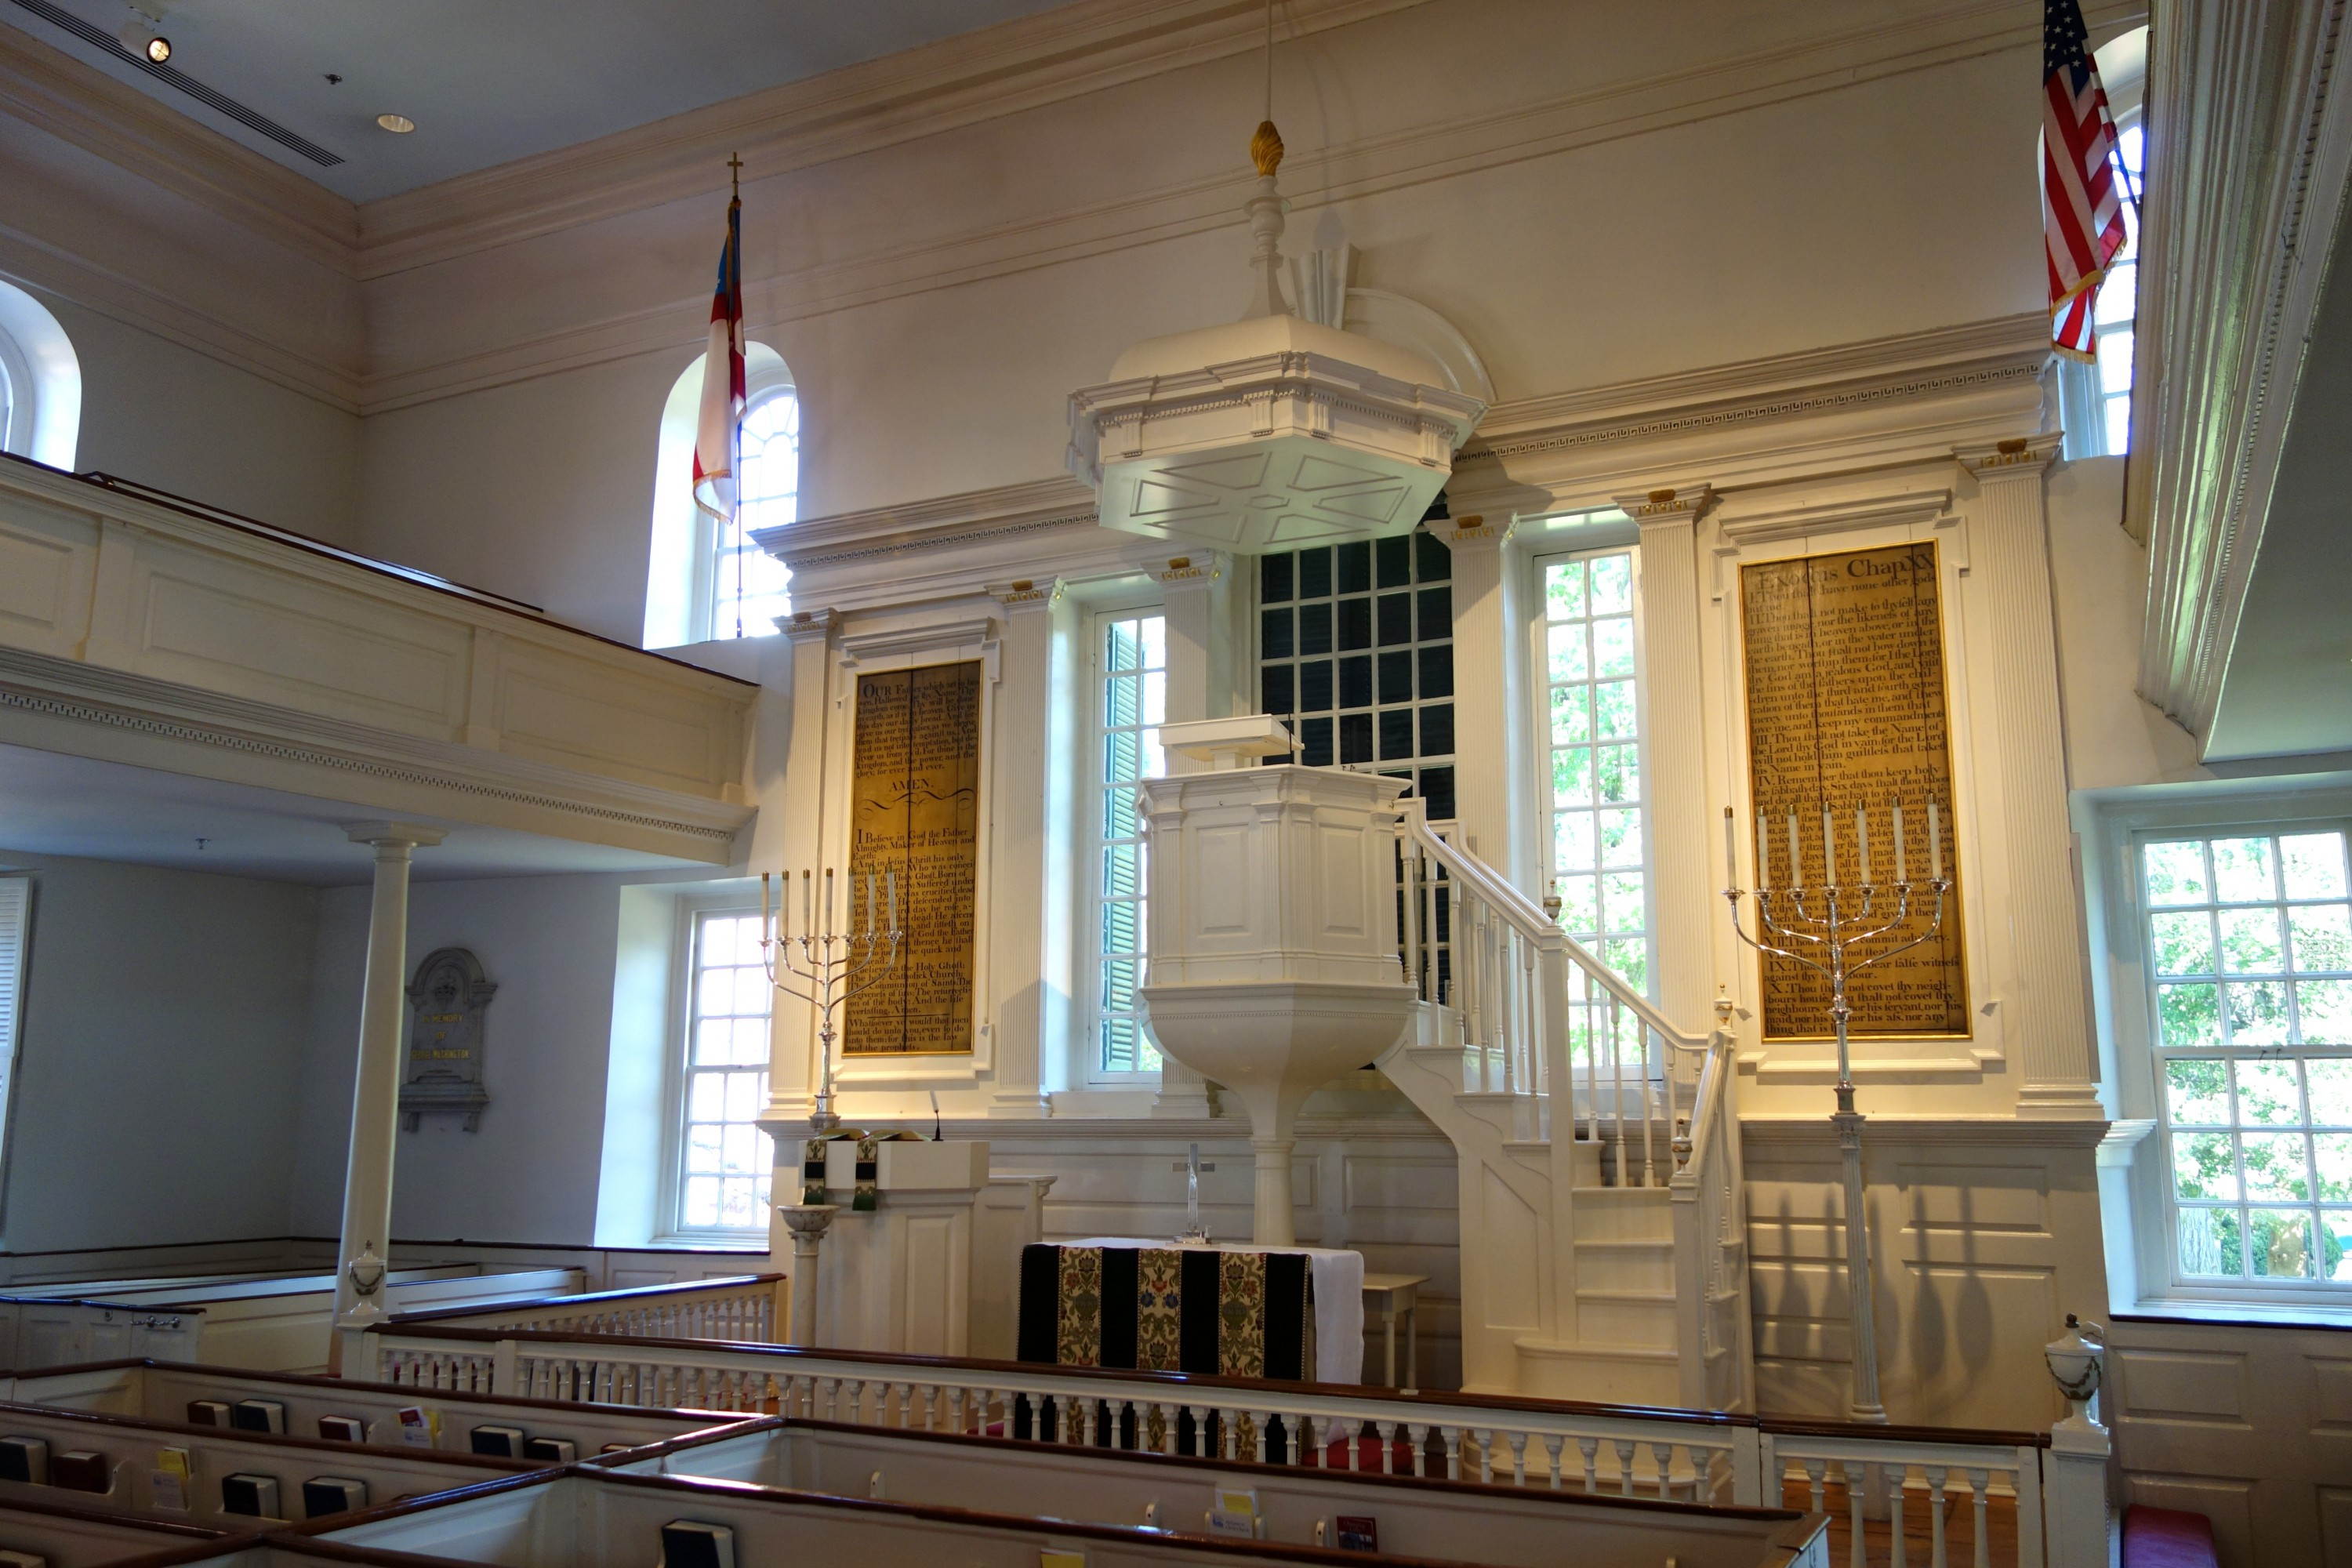 Interior of Christ Church. On the well to the left of the alter can be seen a memorial plaque to George Washington. Image courtesy Wikimedia Commons.